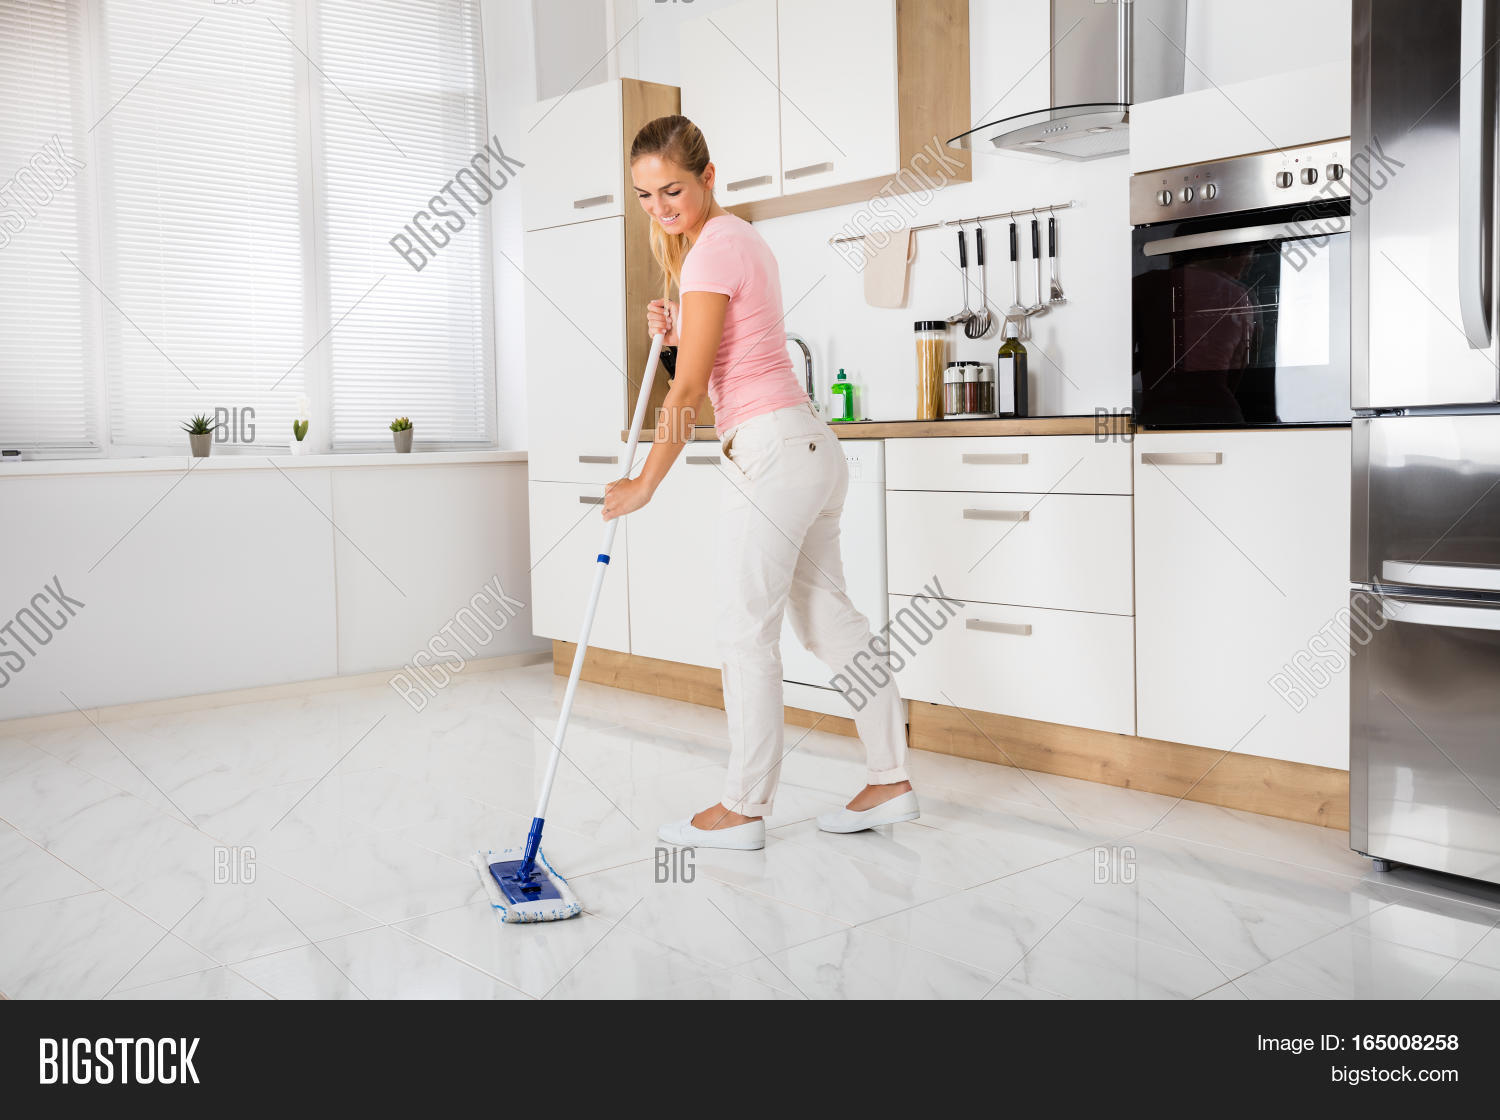 Old fashioned house cleaning